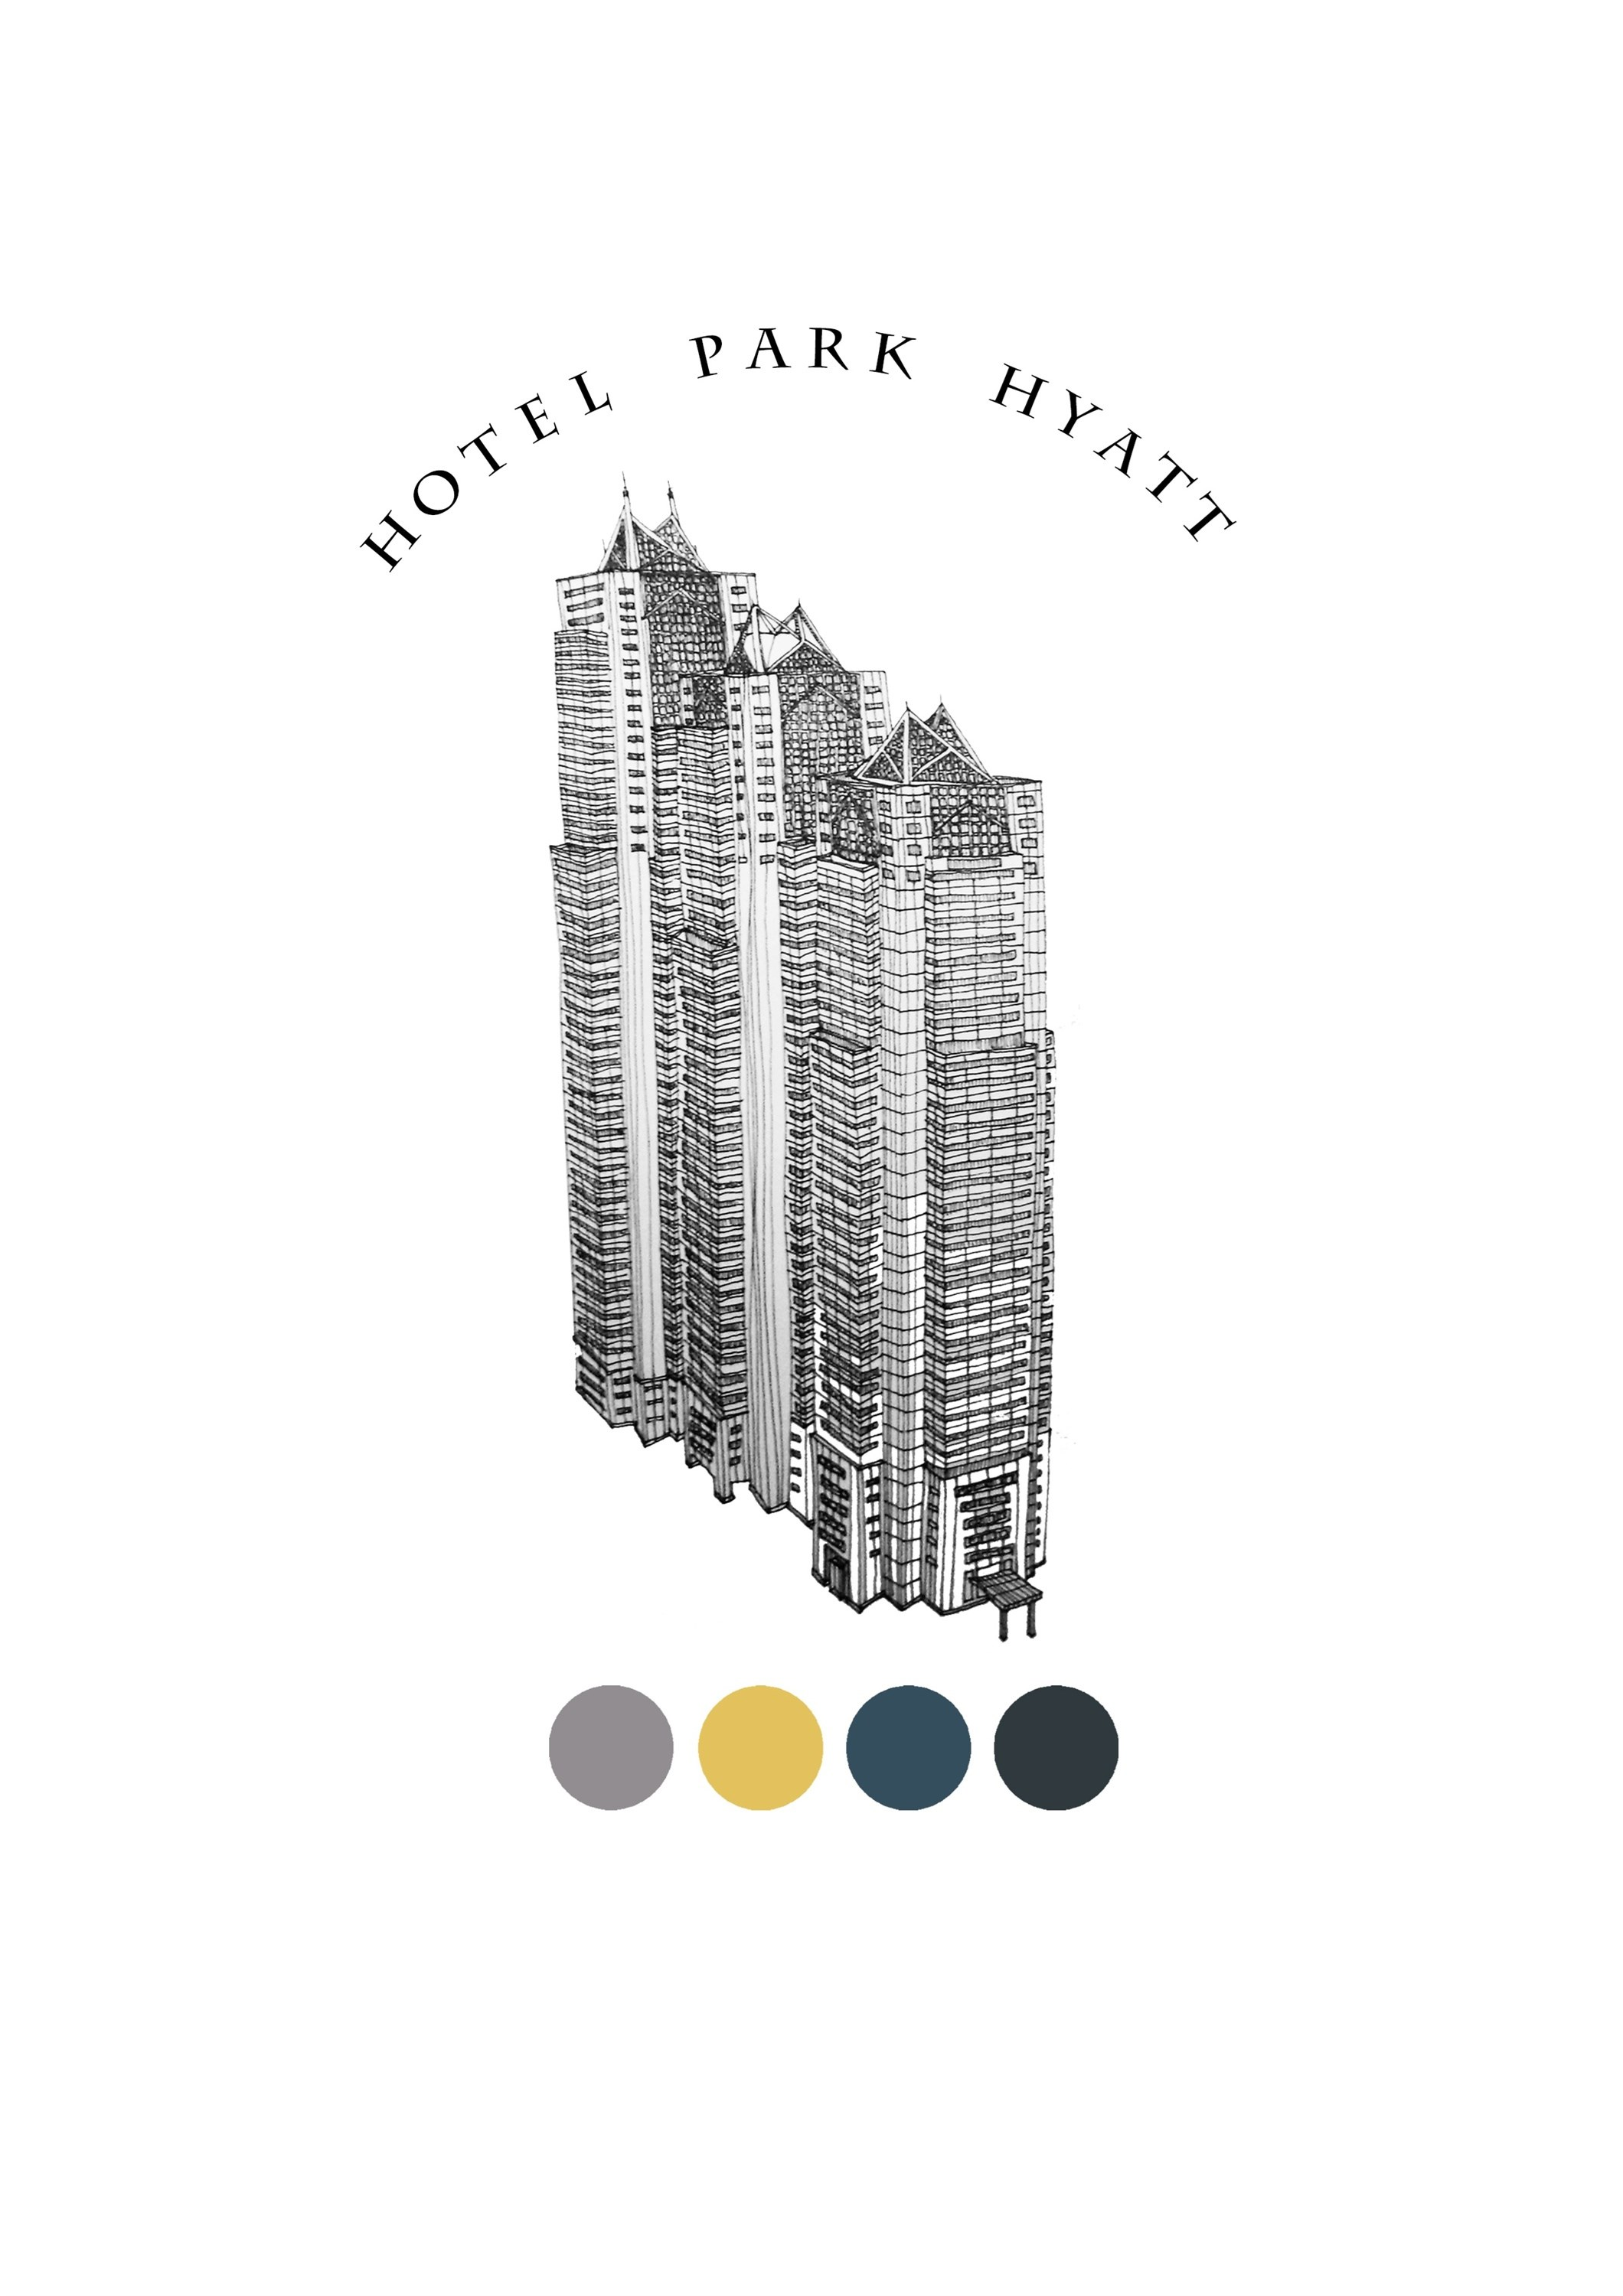 Hotel Park Hyatt, original Places Pen Drawing and Illustration by Florisa Novo Rodrigues